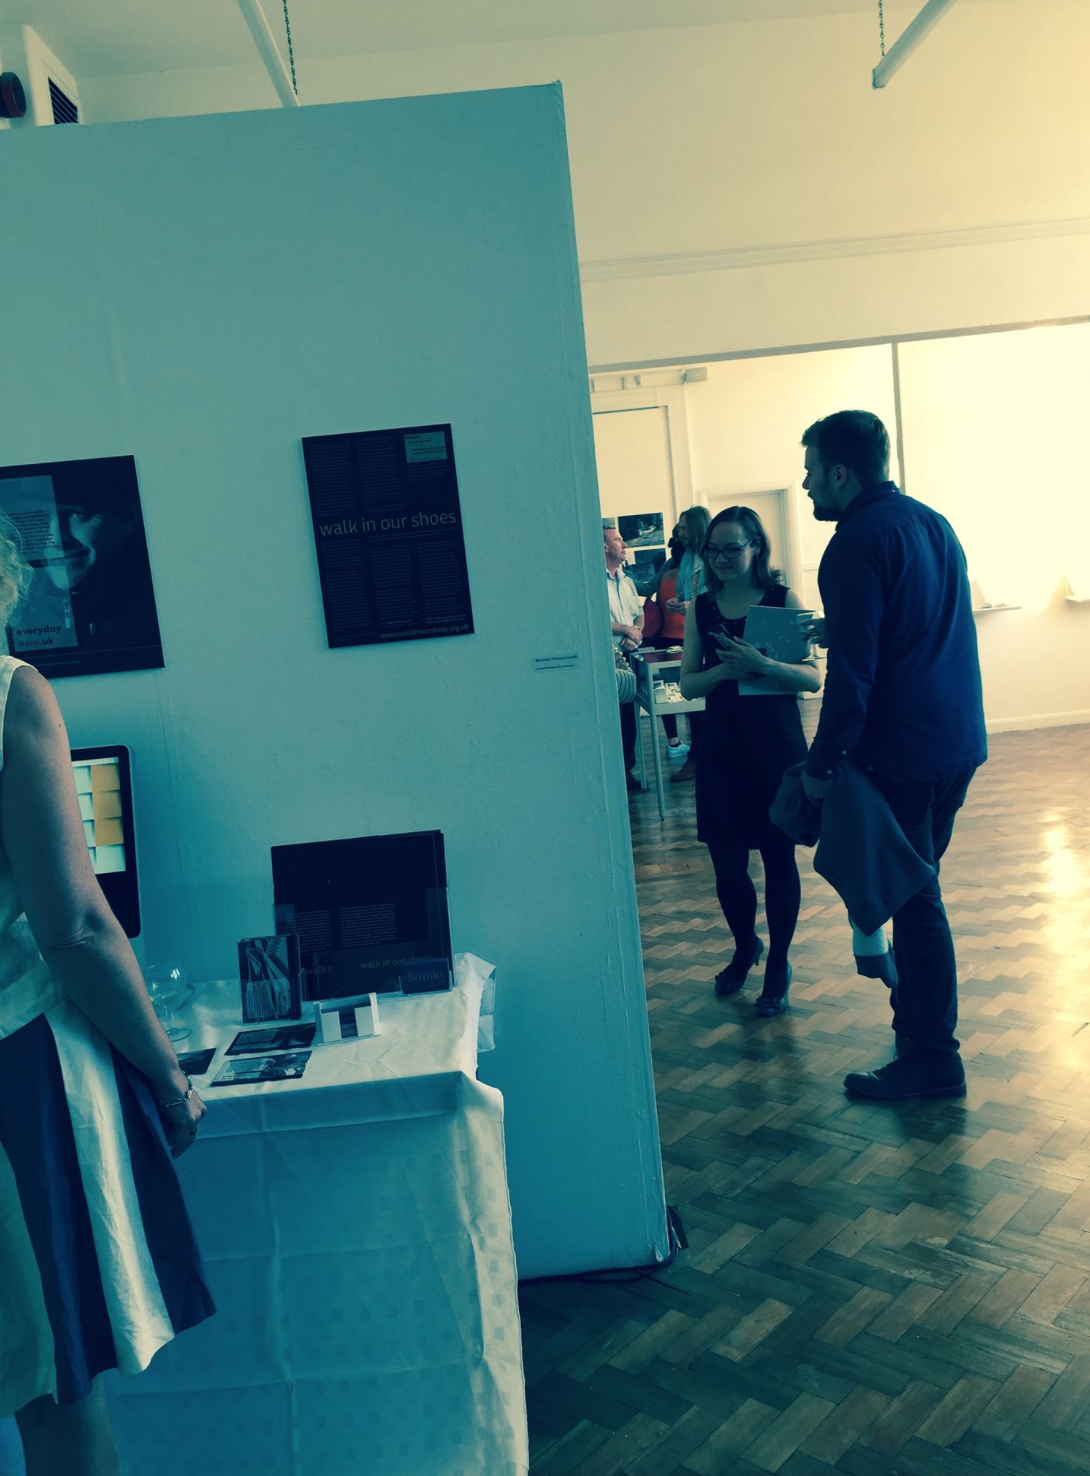 Walk In Our Shoes, exhibiting at The Cambridge School of Art, Sept 2015